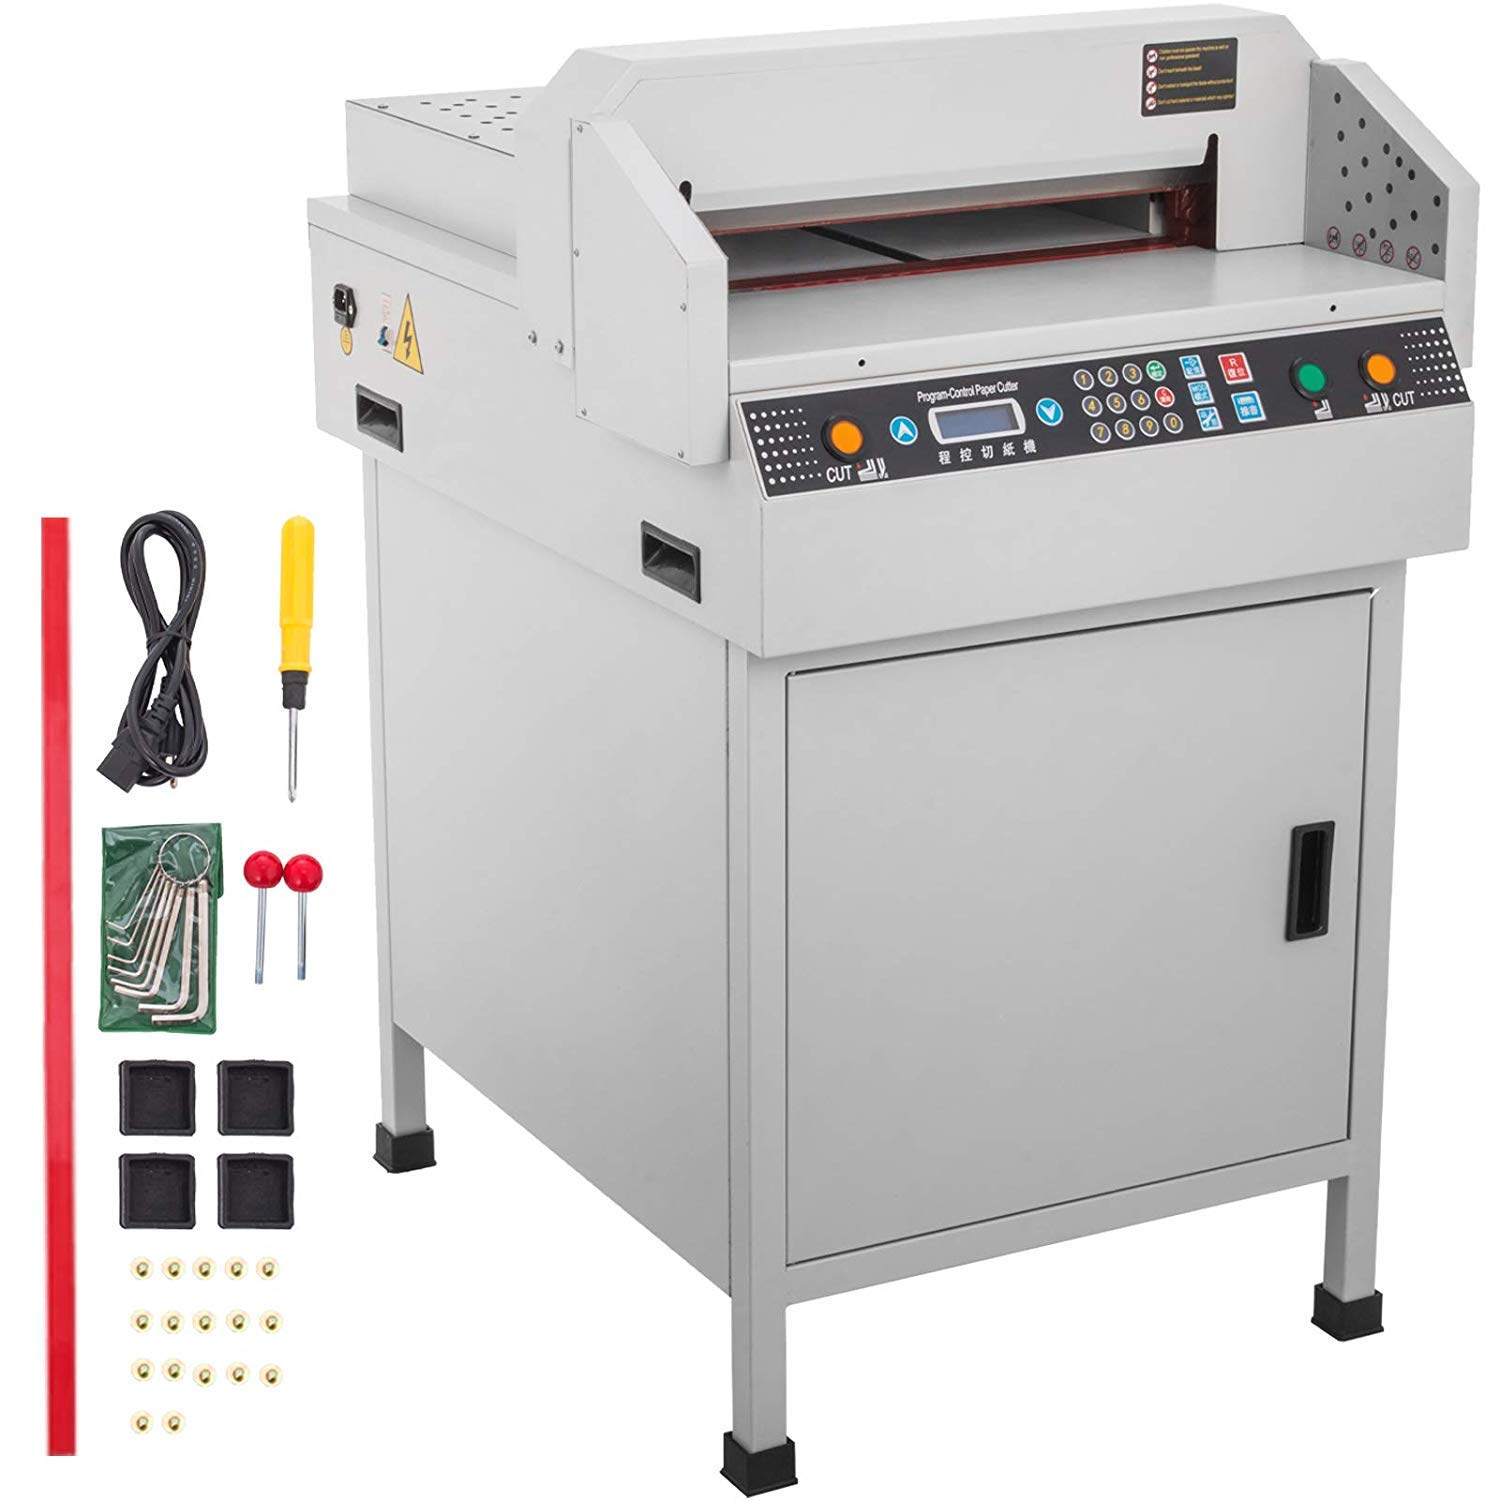 Superland 17.7 Inch Electric Paper Cutter 450mm Automatic Numerical Controlled Guillotine Paper Cutter Heavy Duty (450VS. Electric)